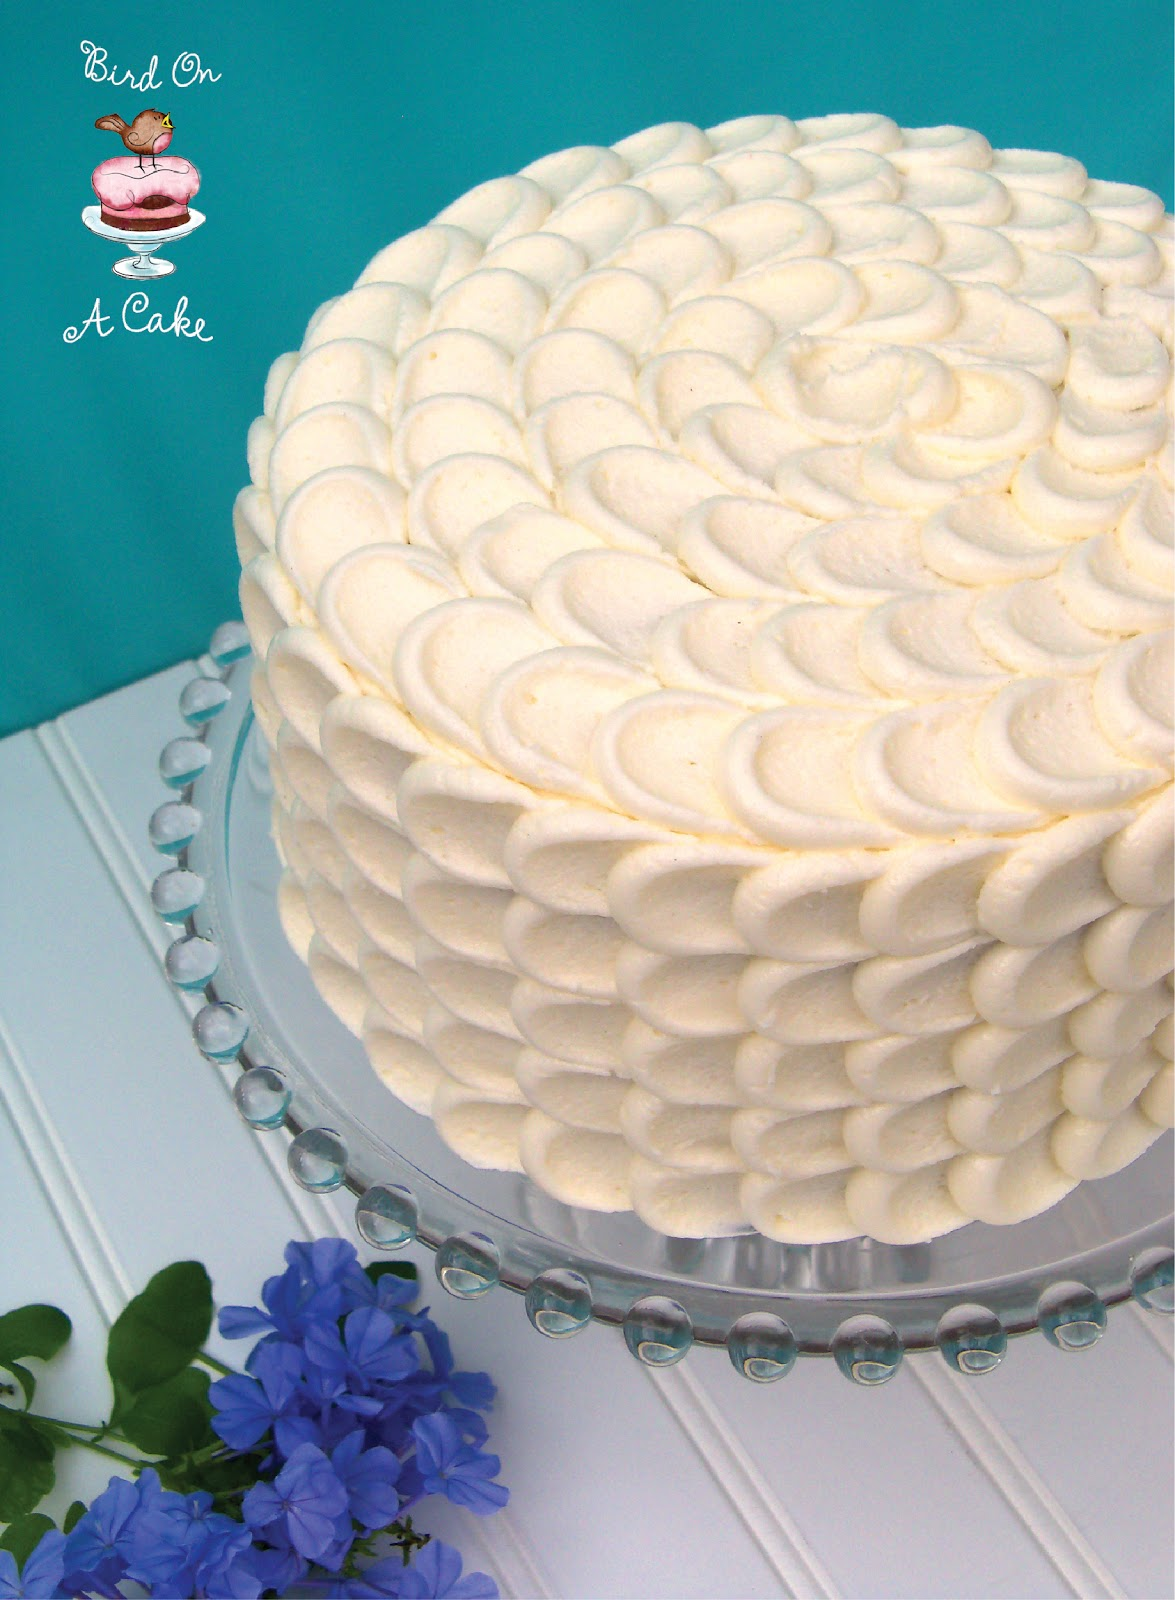 Homemade Cake Icing Designs : Bird On A Cake: Hummingbird Cake with Petal Tutorial